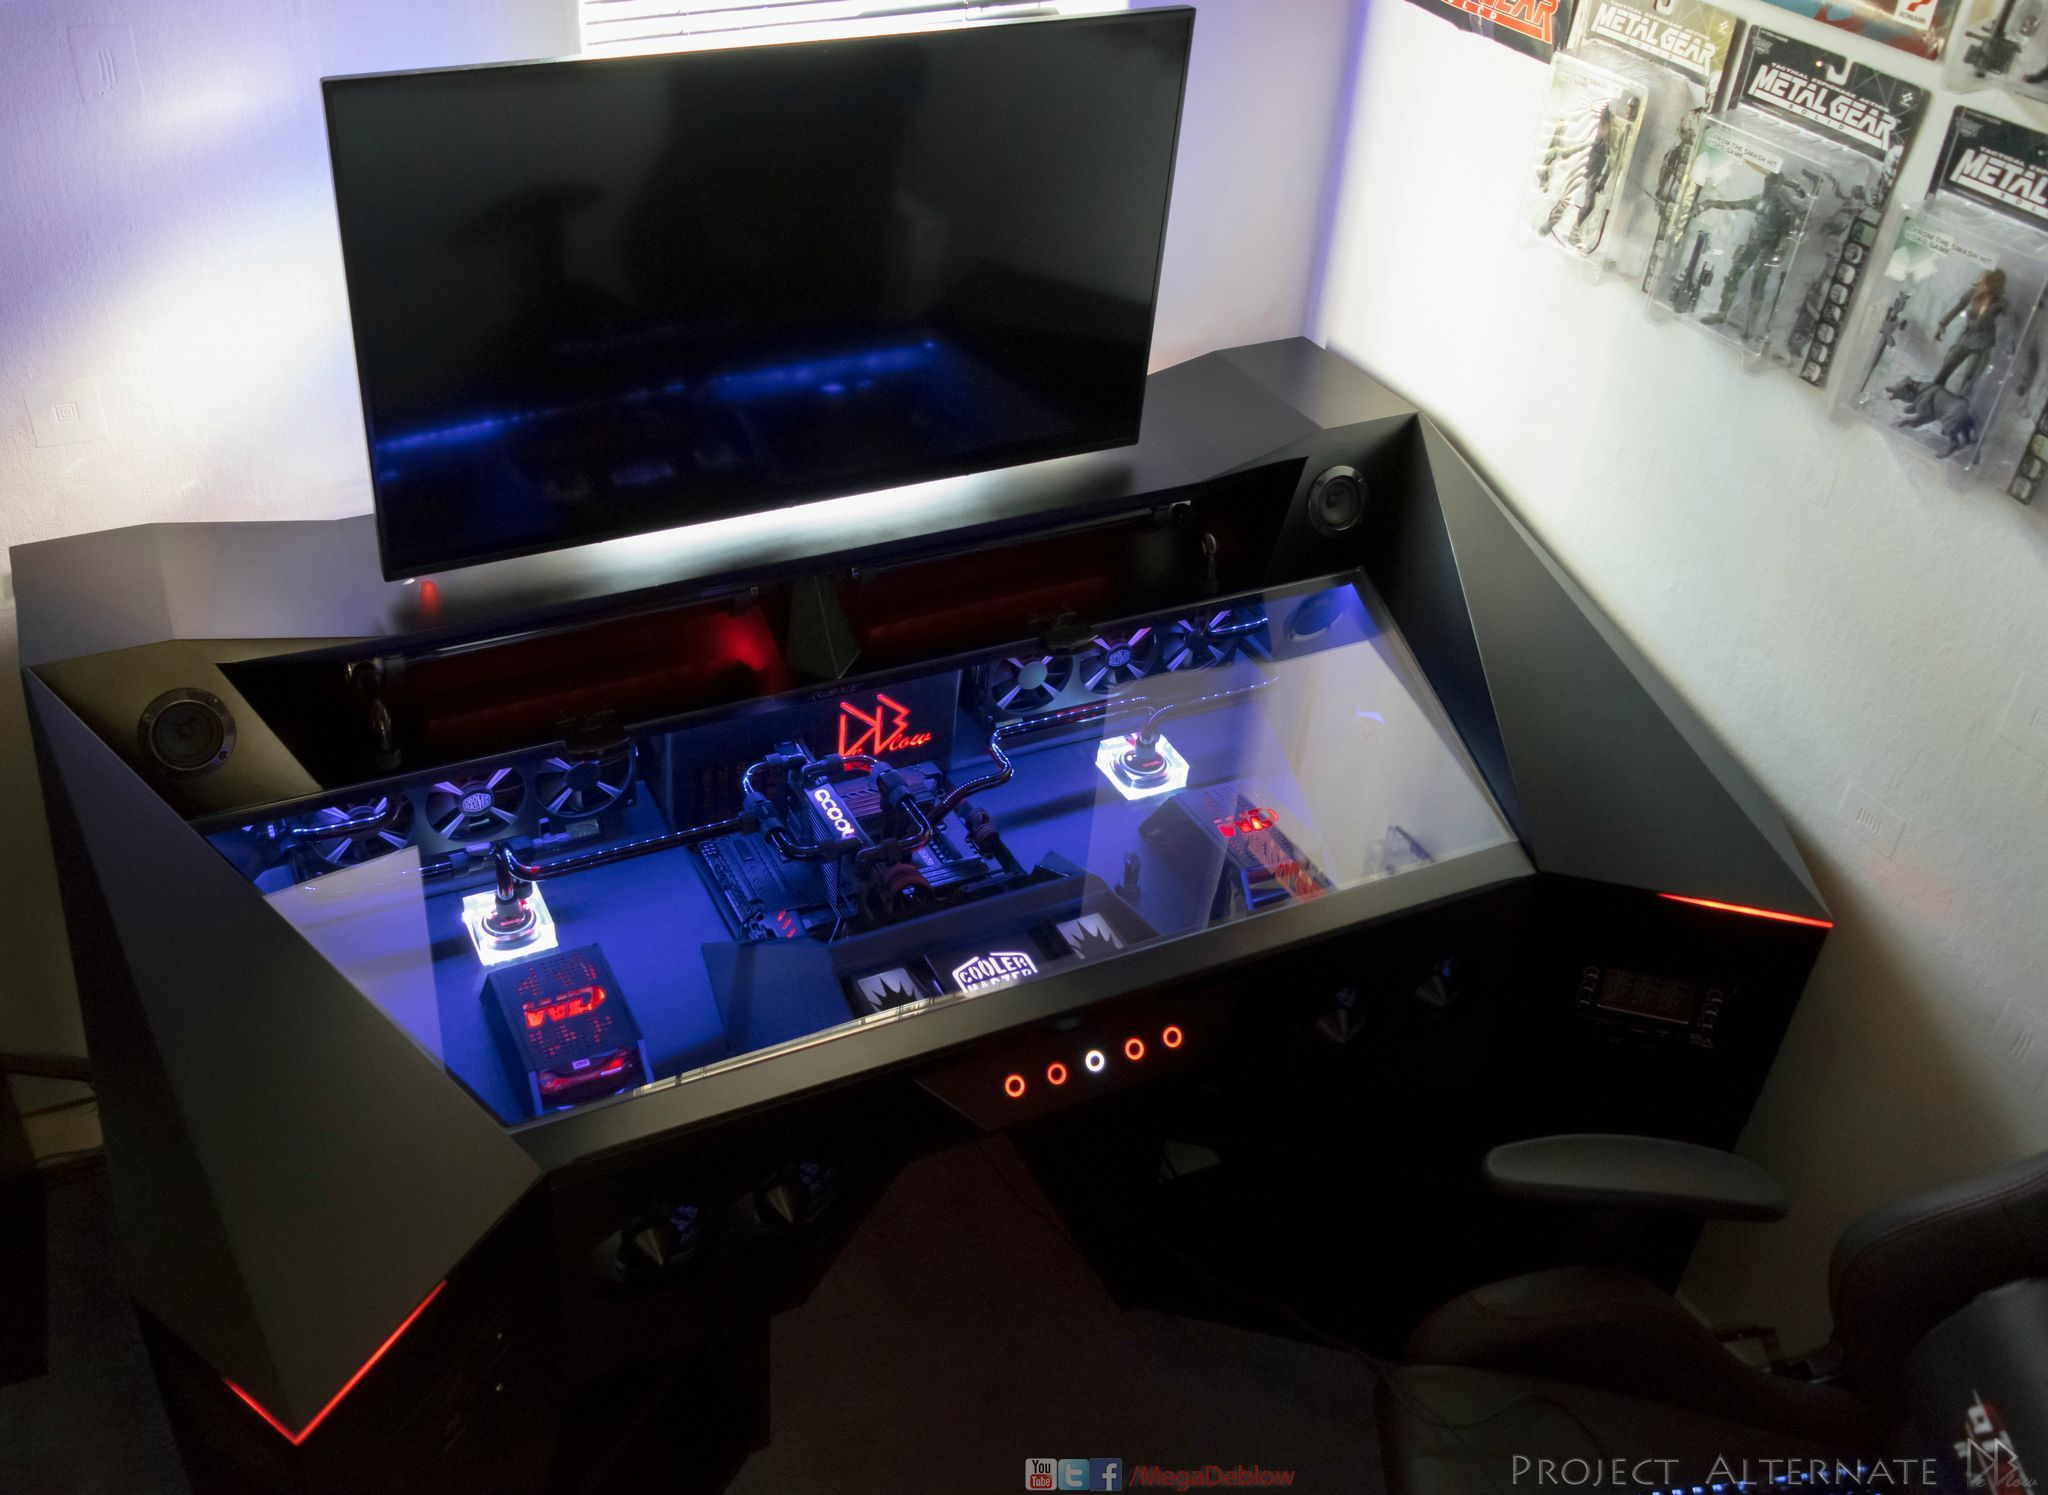 Check Out This Sweet Custom Desk Pc By U Deblow Over On Reddit Build Specs And More Http Imgur Com A Dhoe Gaming Computer Desk Gaming Desk Custom Pc Desk